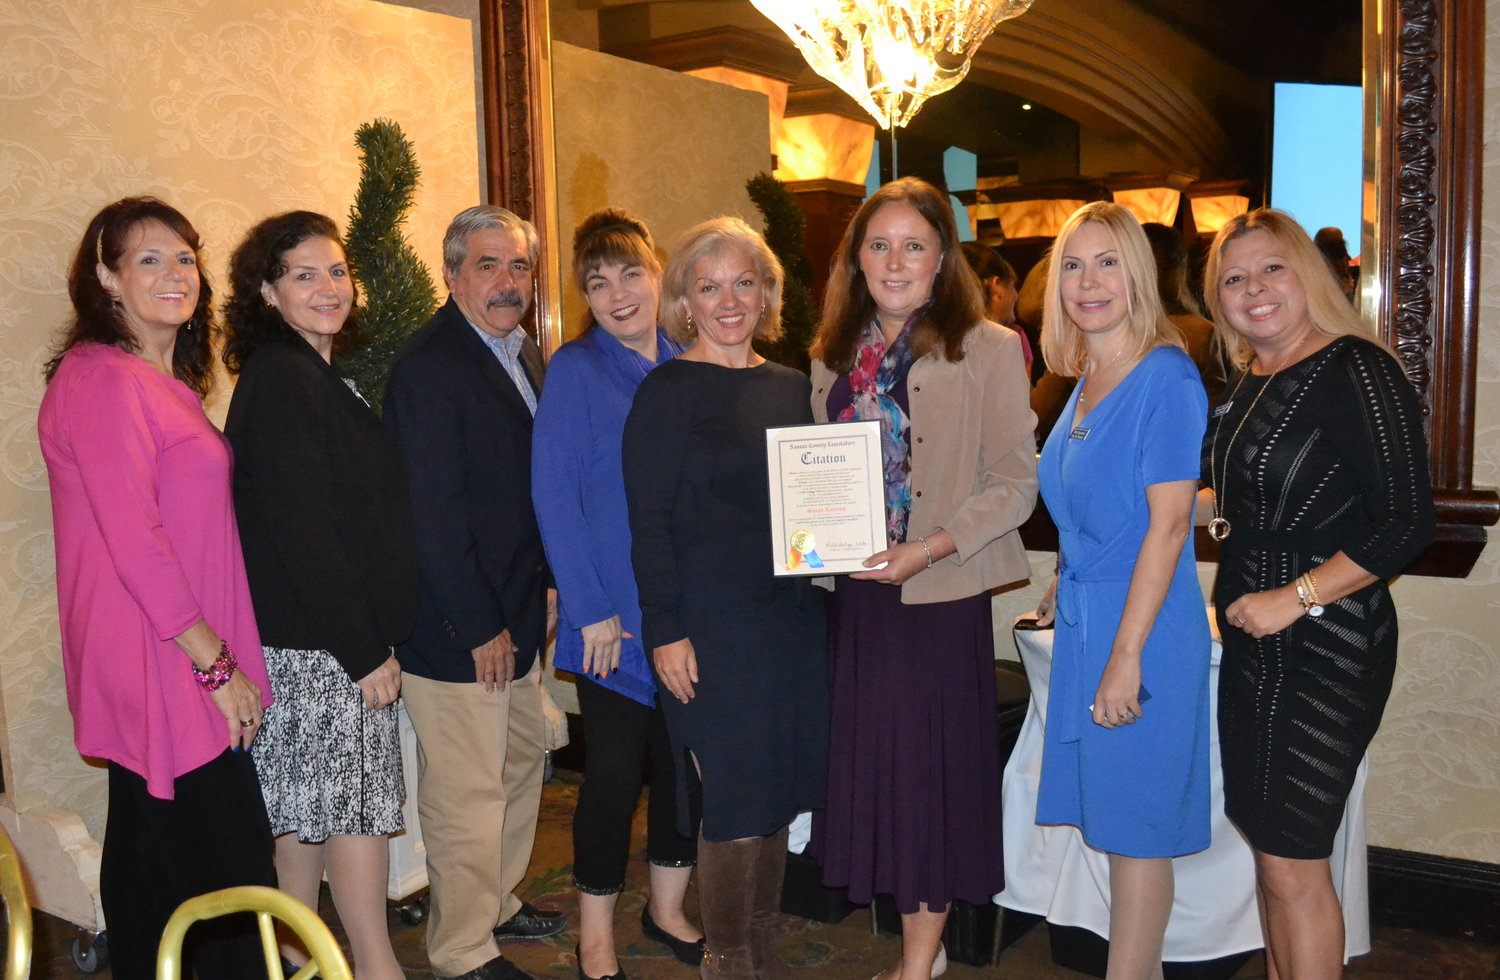 Susan Rassekh, fourth from the right, received the 2019 Nassau Council of Chamber of Commerce's Small Business Person of the Year Award.